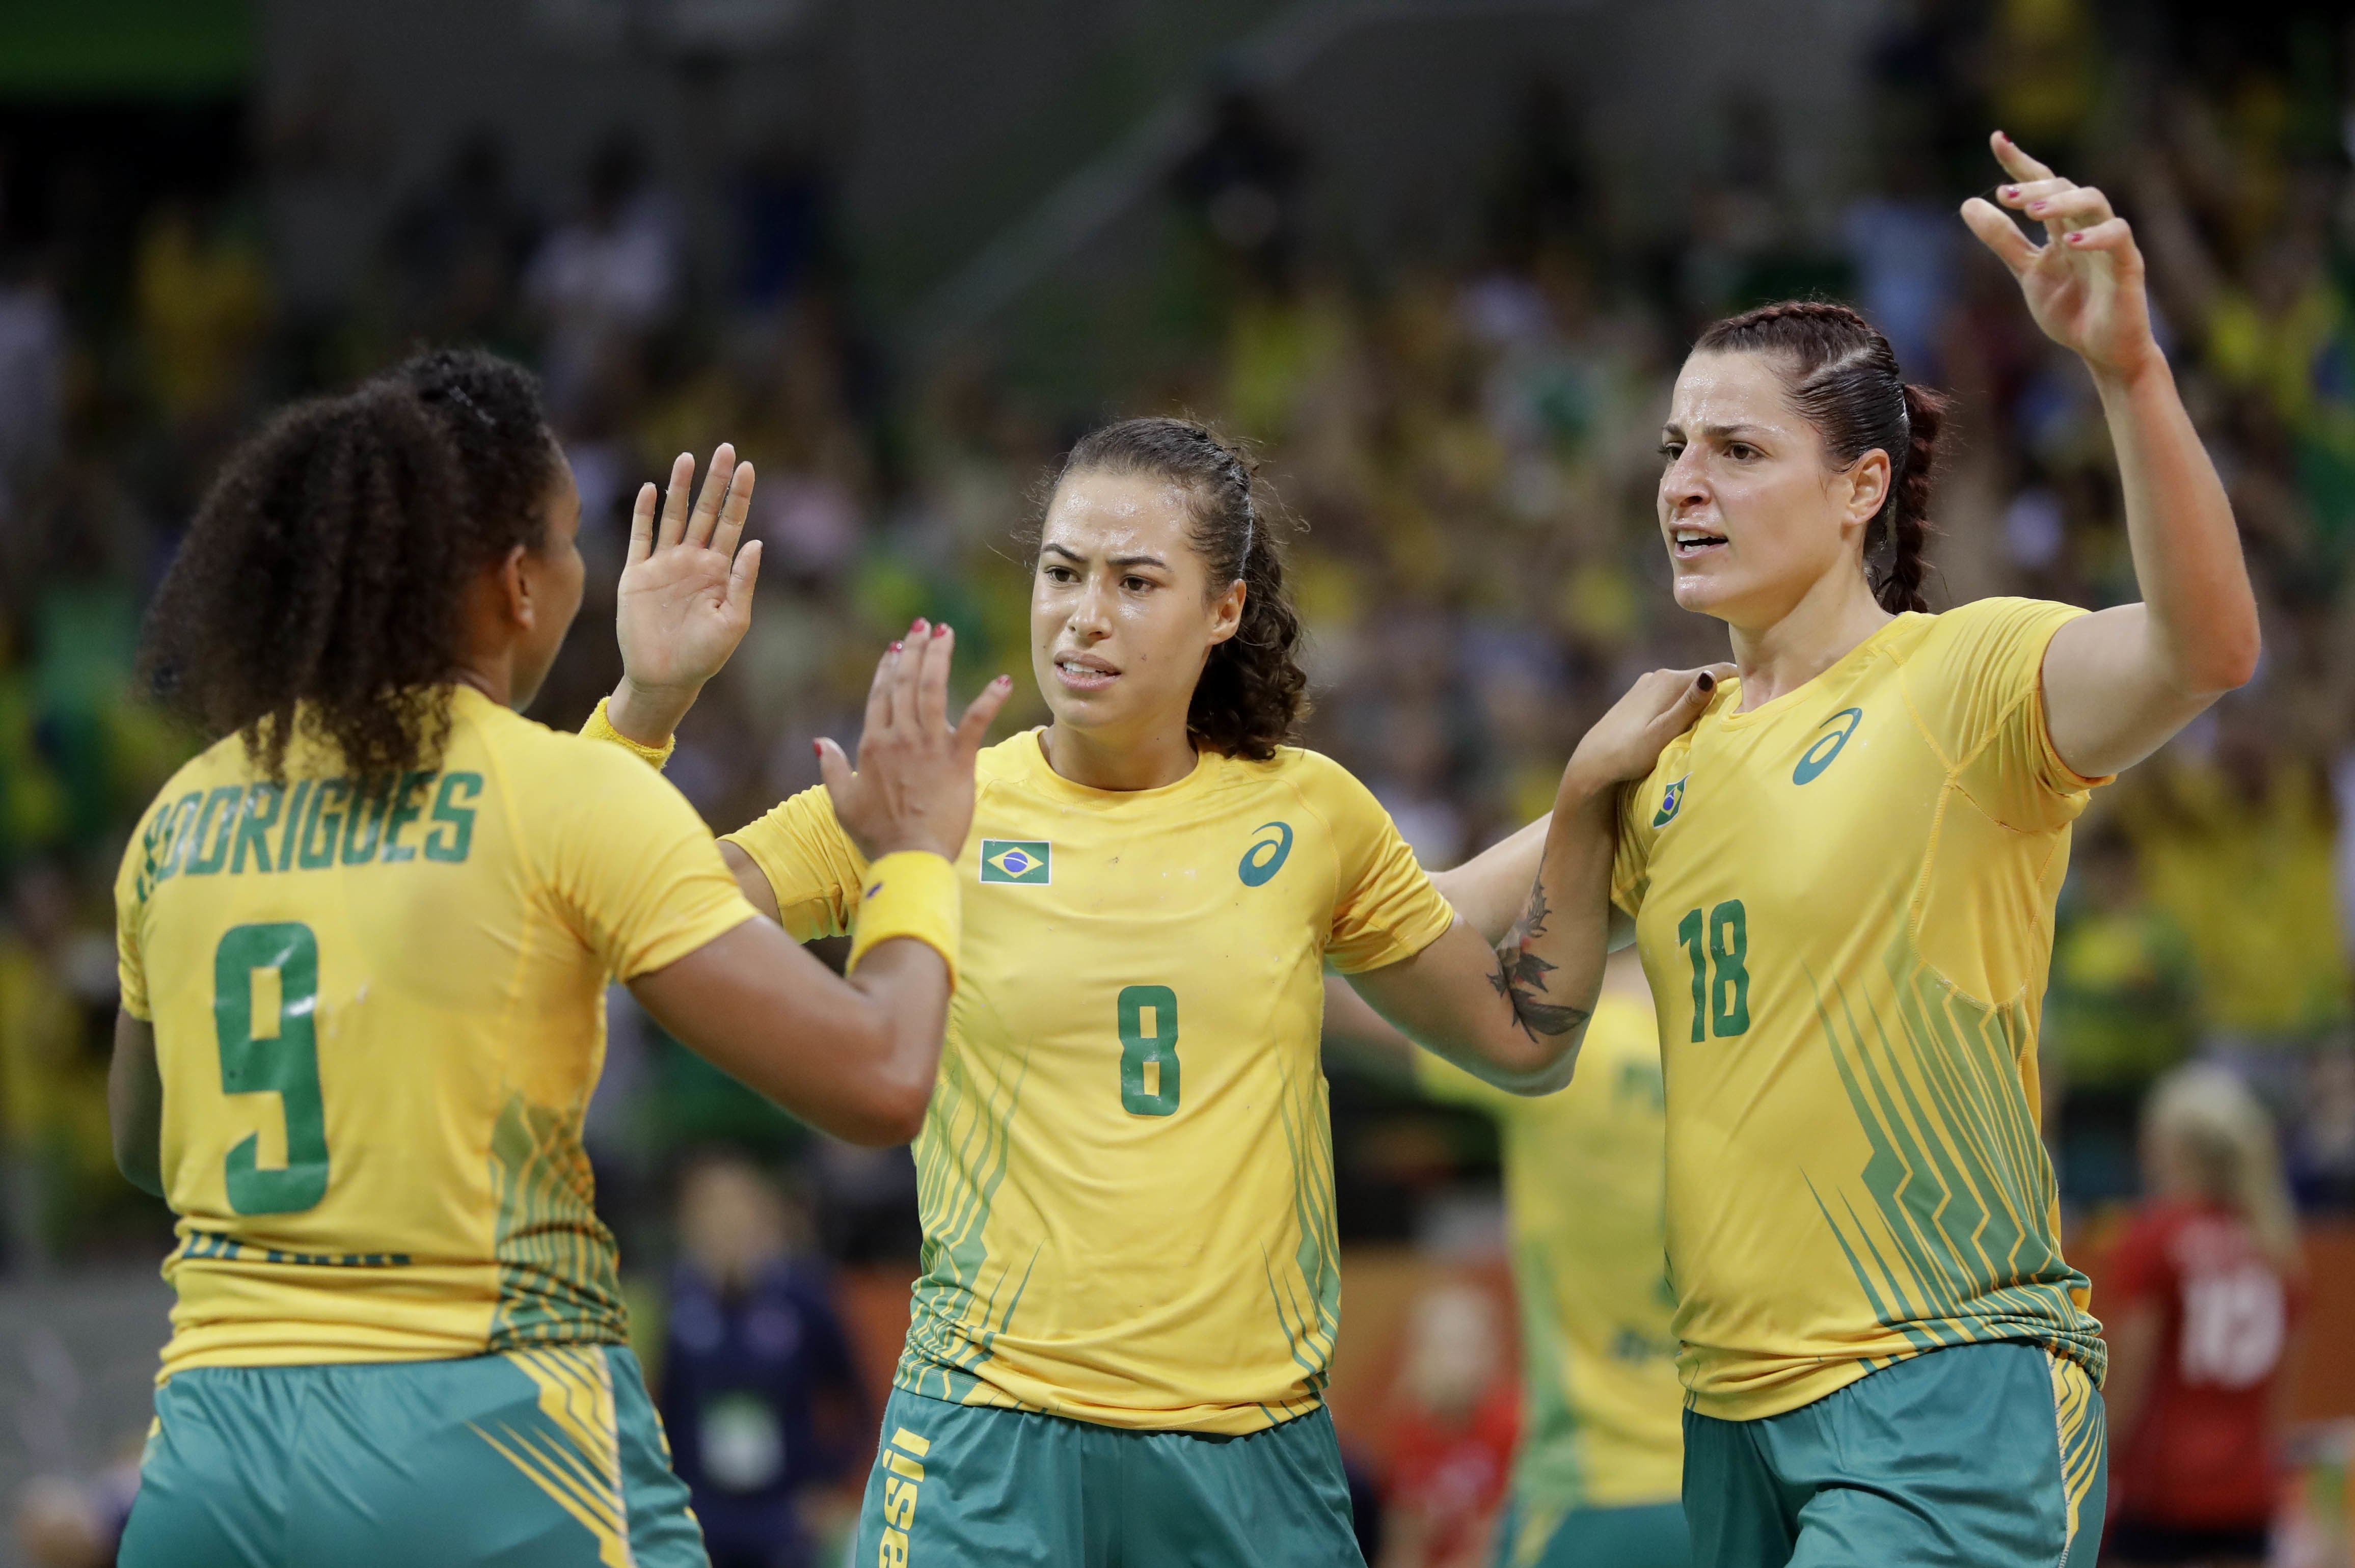 Brazil's Ana Paula Belo, from left, Brazil's Fernanda Franca Da Silva and Brazil's Eduarda Taleska celebrate after defeating Norway during the women's preliminary handball match between Norway and Brazil at the 2016 Summer Olympics in Rio de Janeiro, Braz